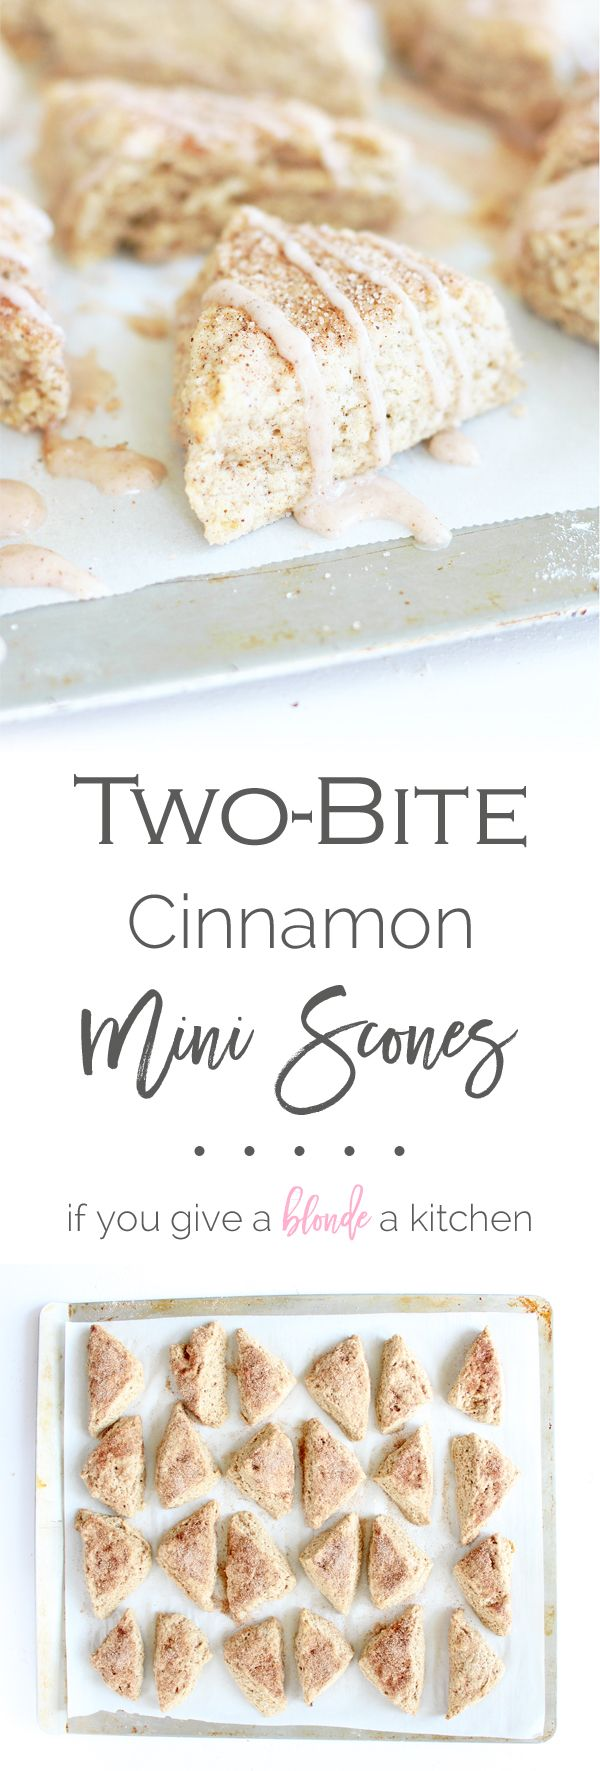 Two-bite cinnamon sugar scones are mini breakfast treats sweetened with cinnamon sugar. If you like snickerdoodles, you'll love these scones! | www.ifyougiveablondeakitchen.com